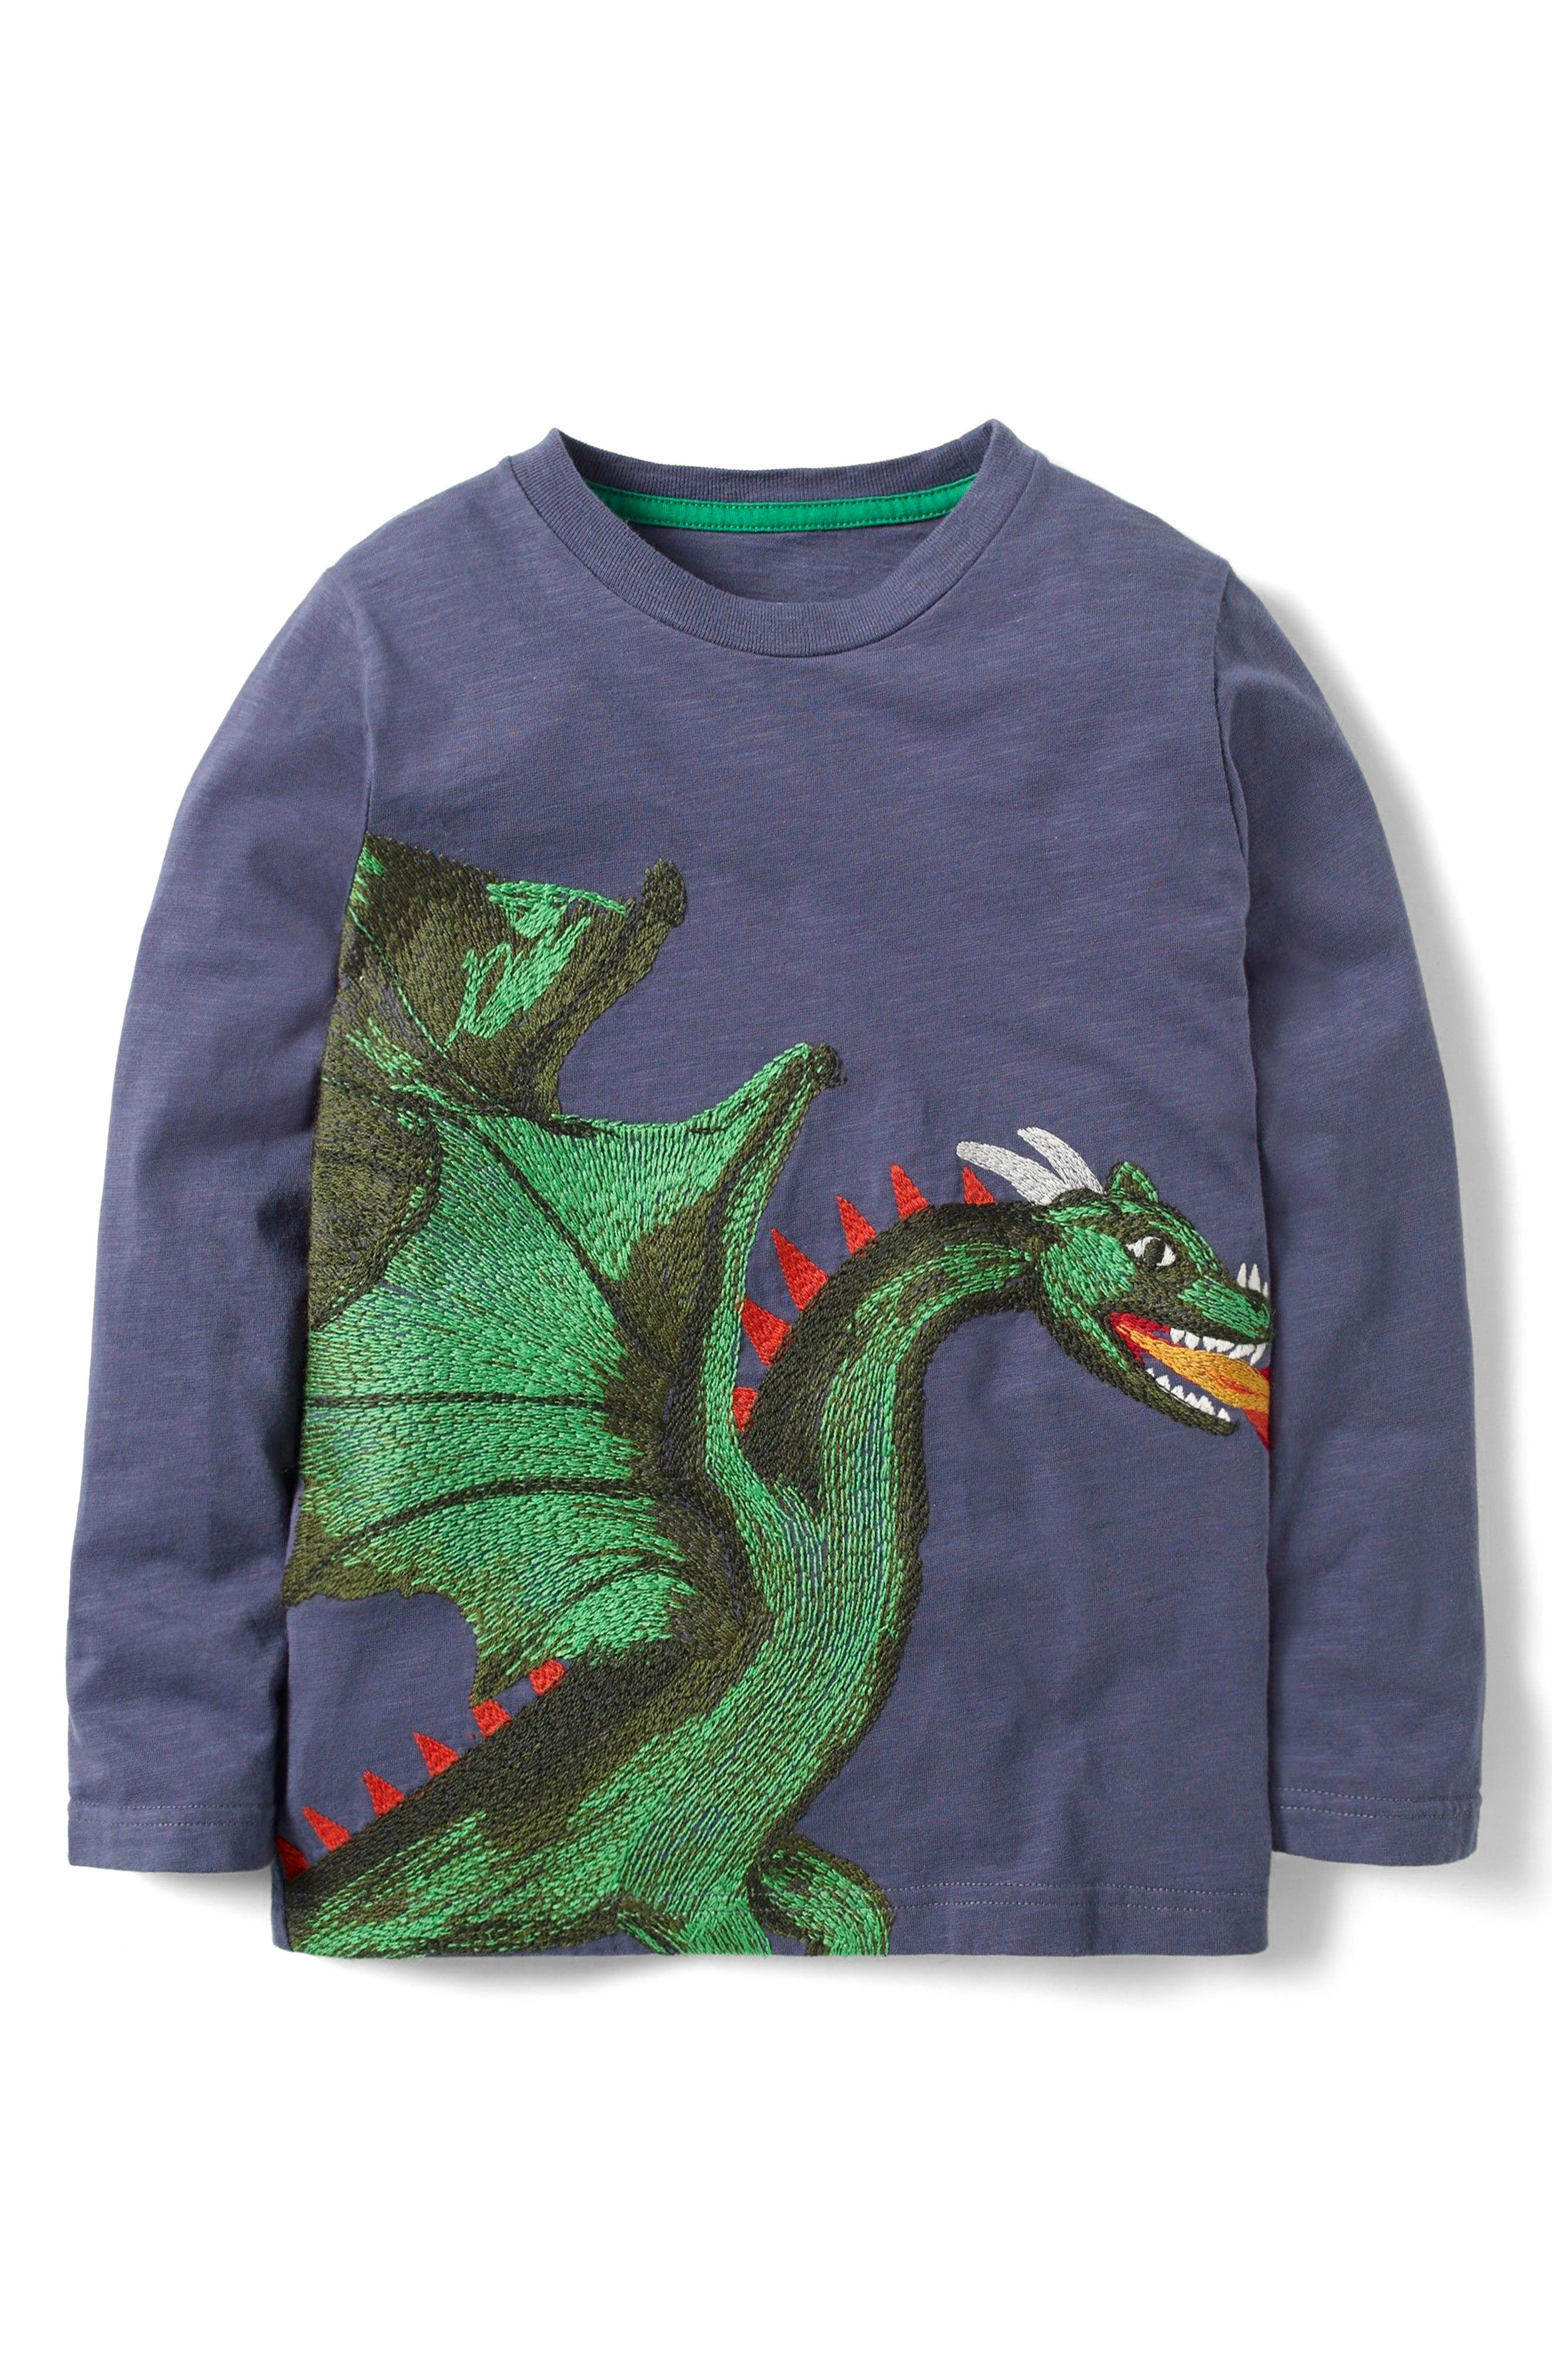 Mythical Superstitch T-Shirt,                         Main,                         color, Charcoal Grey Marl Dragon